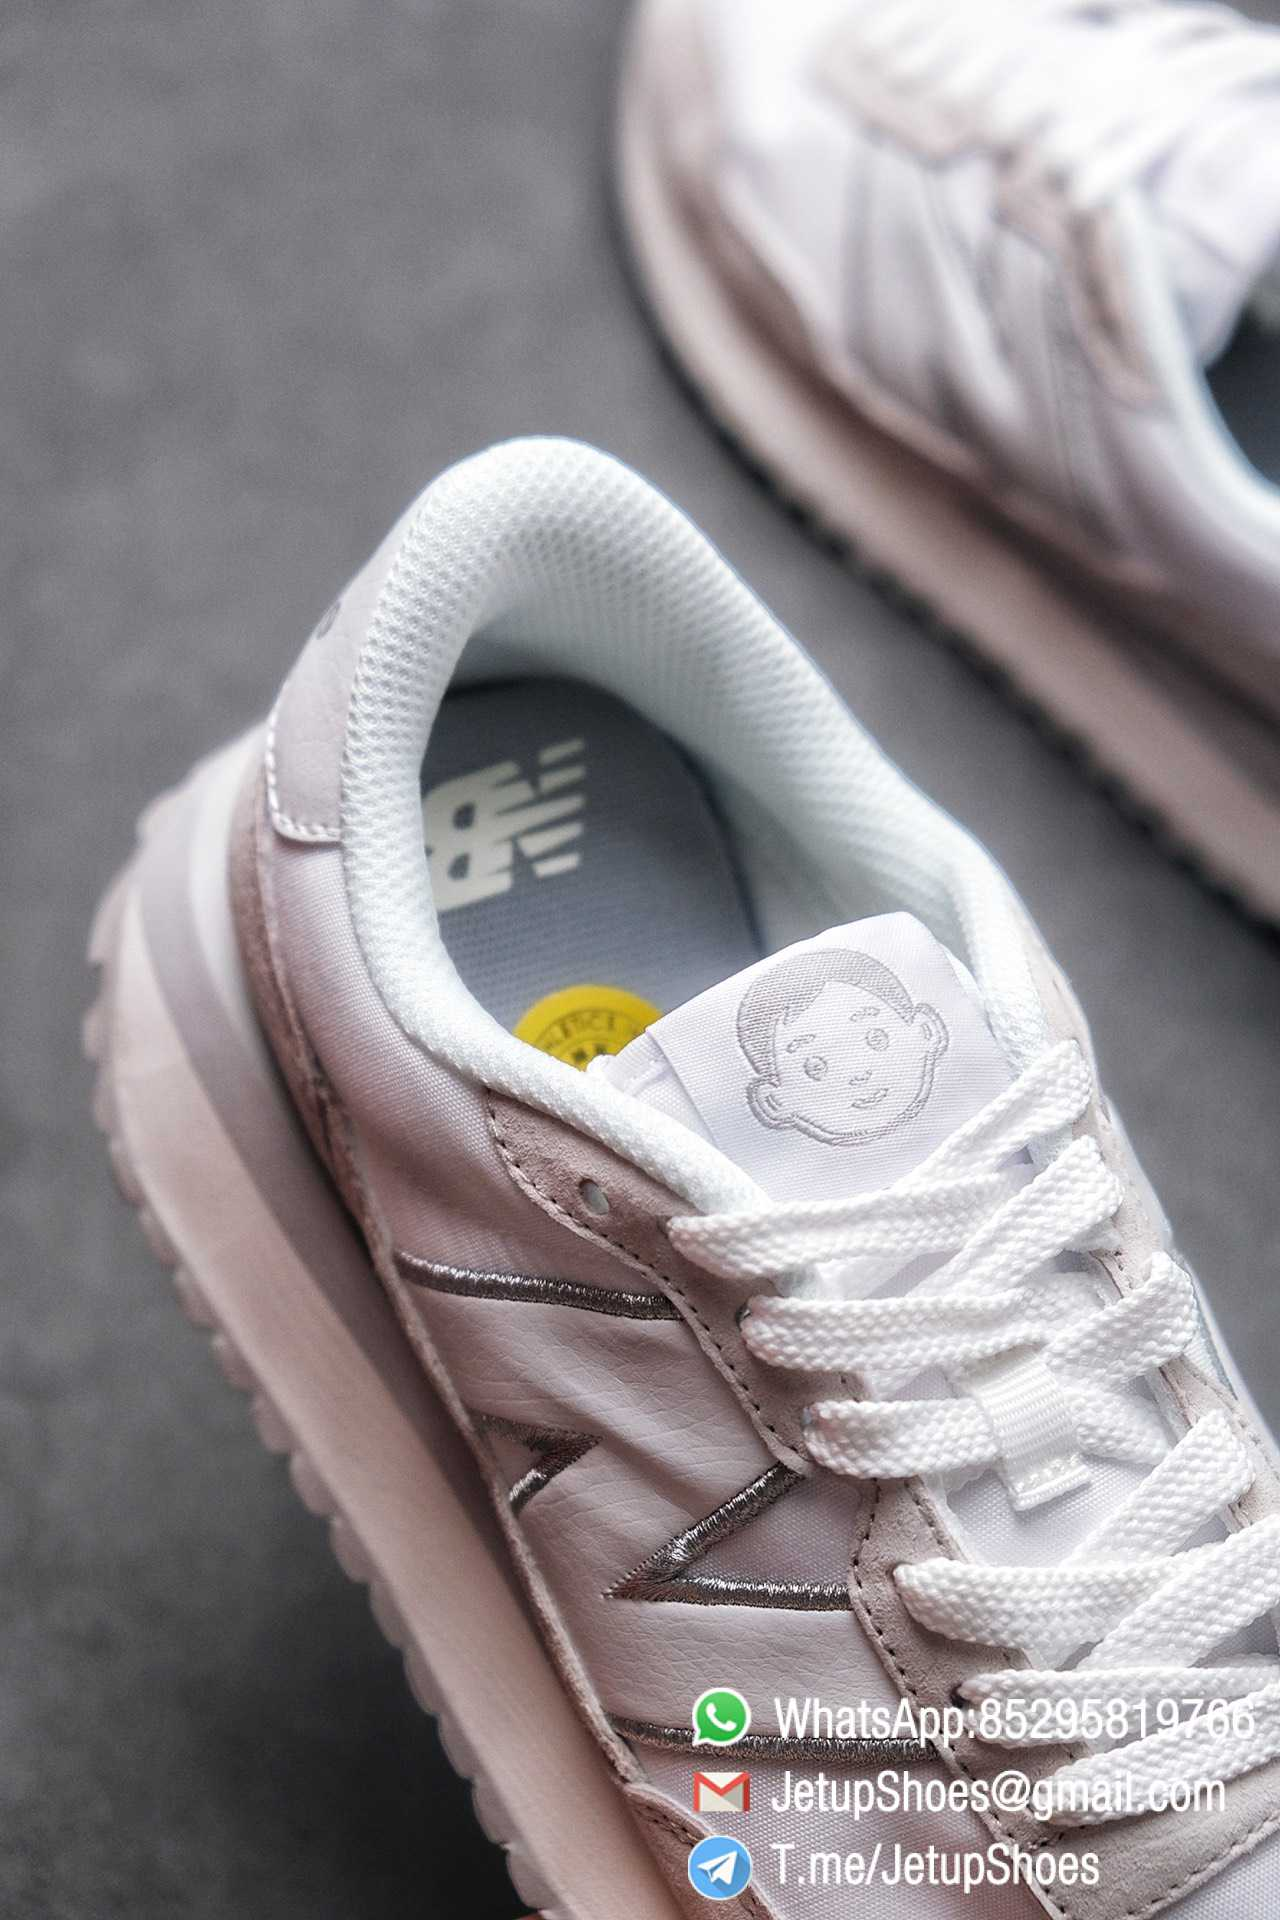 Best Replica 2021 New Balance 237 White Light Grey SKU MS237NW1 High Quality Running Sneakers 06